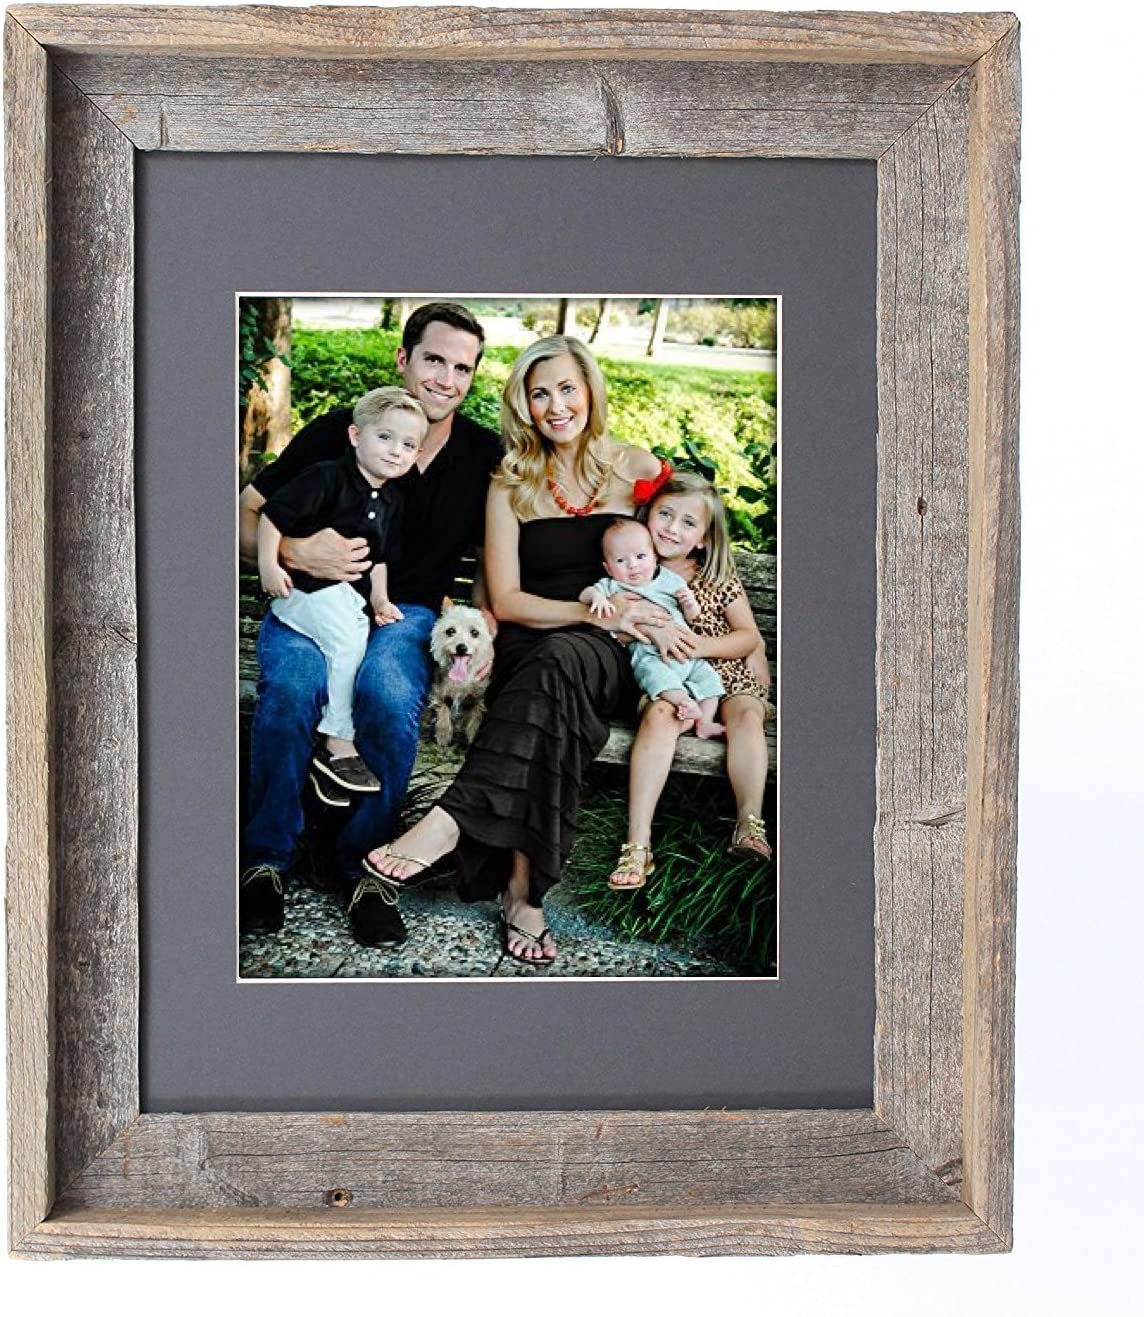 BarnwoodUSA 16X20 Inch Signature Picture Be Finally popular brand super welcome for 11X14 Frame Matted